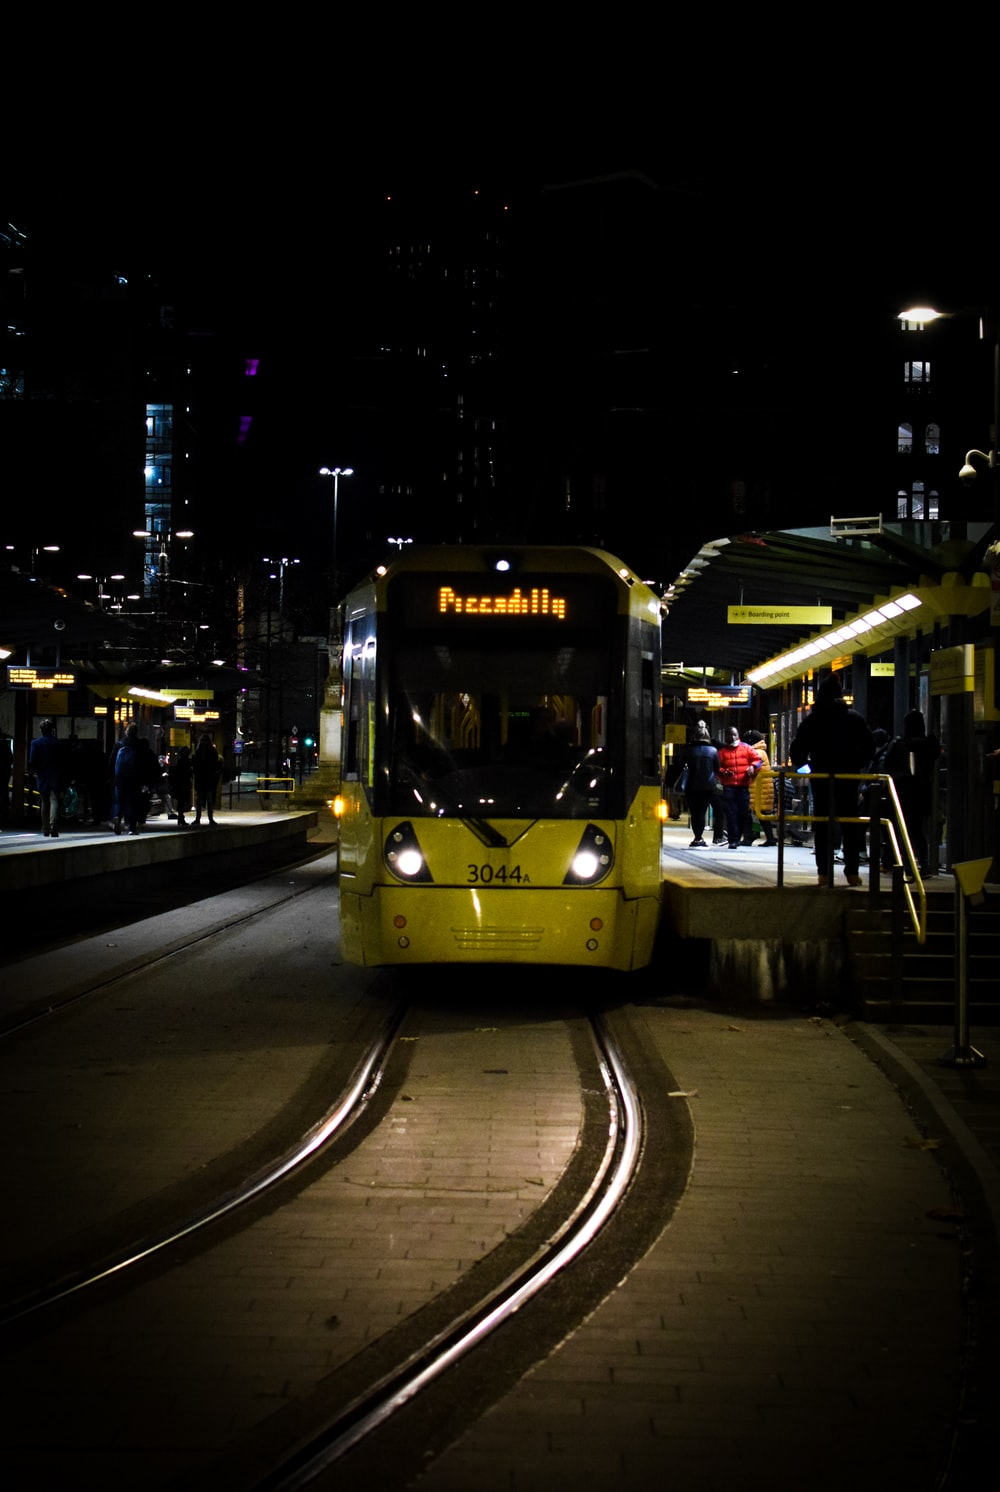 yellow tram on road during night time